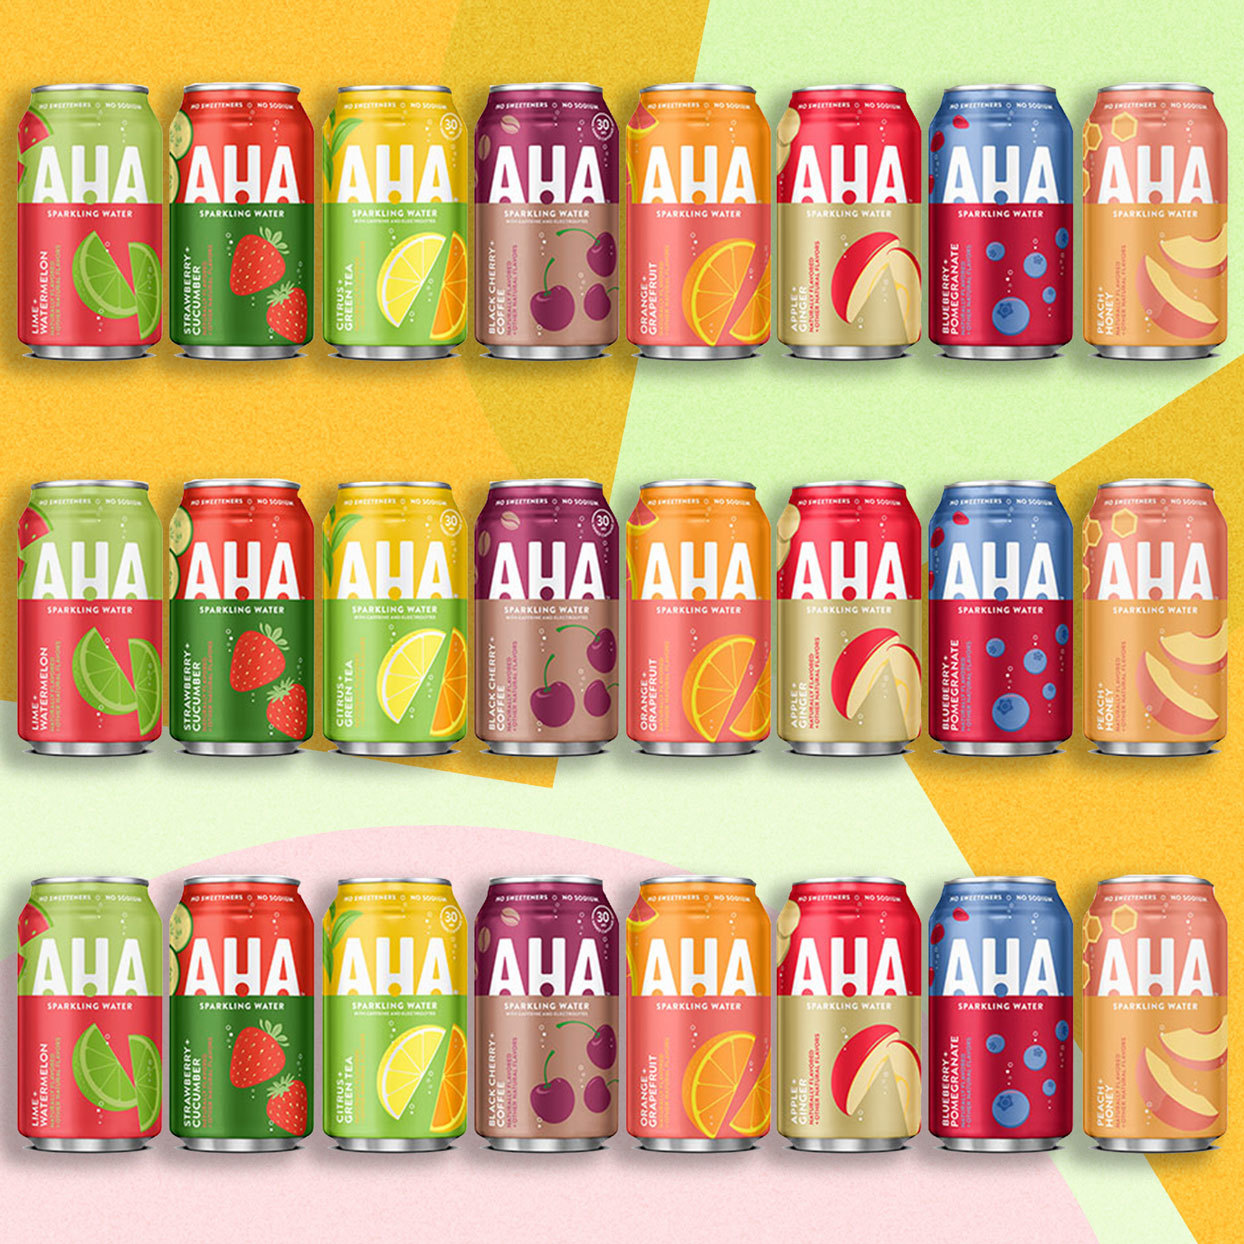 many different flavors of canned Aha Sparkling Water